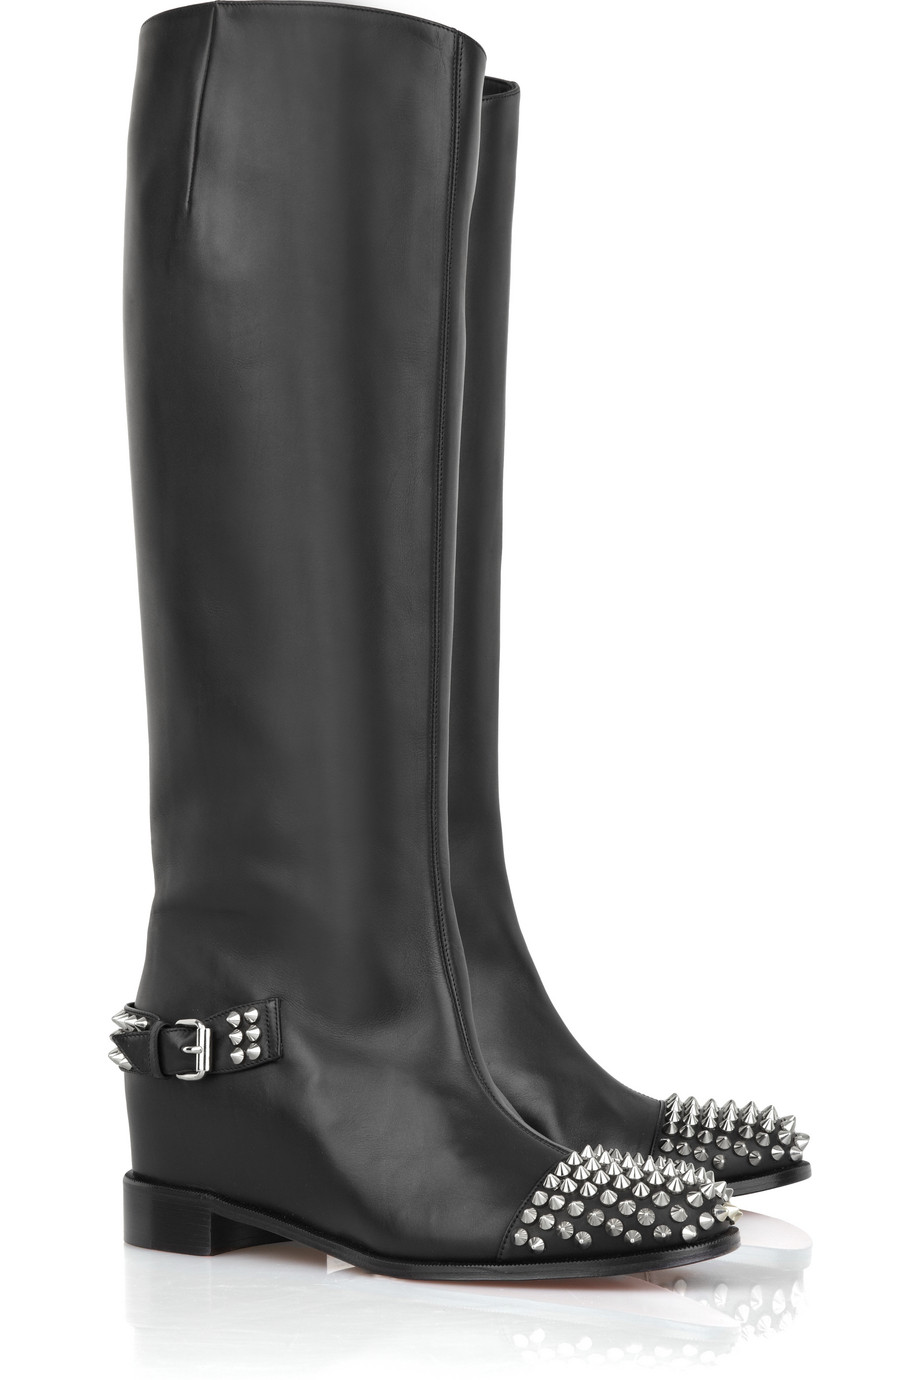 Christian Louboutin Egoutina Studded Leather Boots in Black - Lyst